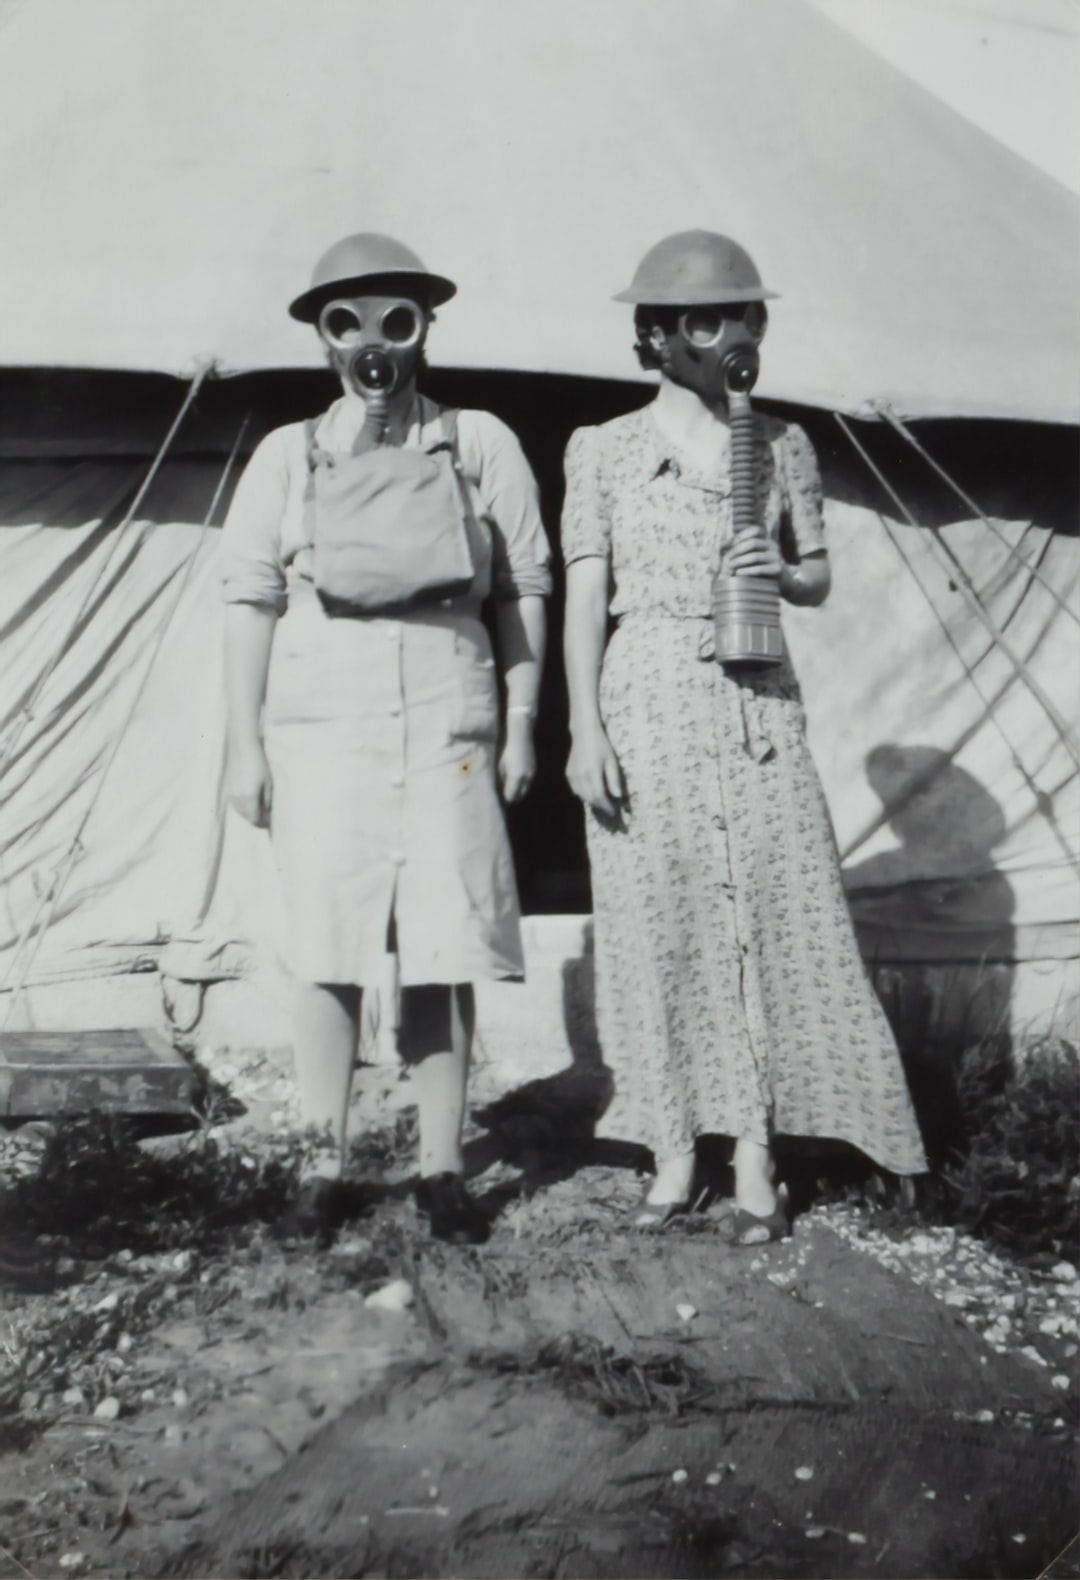 Nell Duncanson and Isabel Plante Wearing Gas Masks, Israel, World War II, 1939-1943